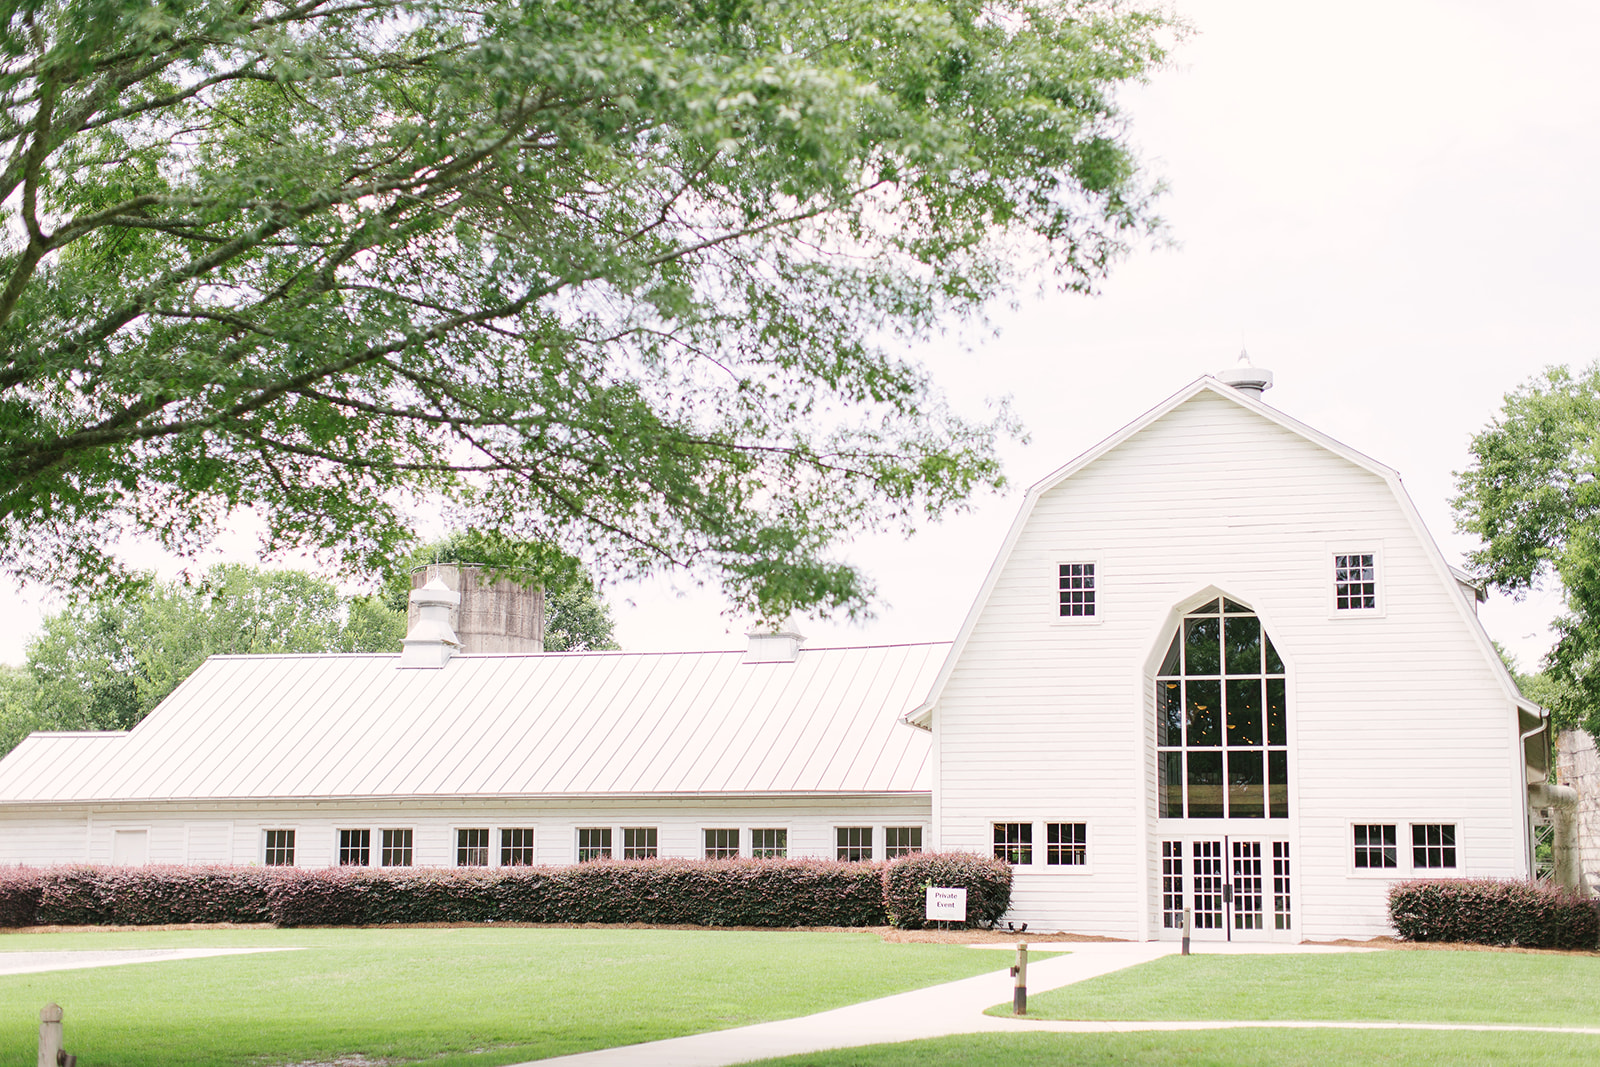 The Diary Barn in Fort Mill South Carolina serves as the perfect setting for a spring wedding captured by Paige Ryan Photography and coordinated by Magnificent Moments Weddings